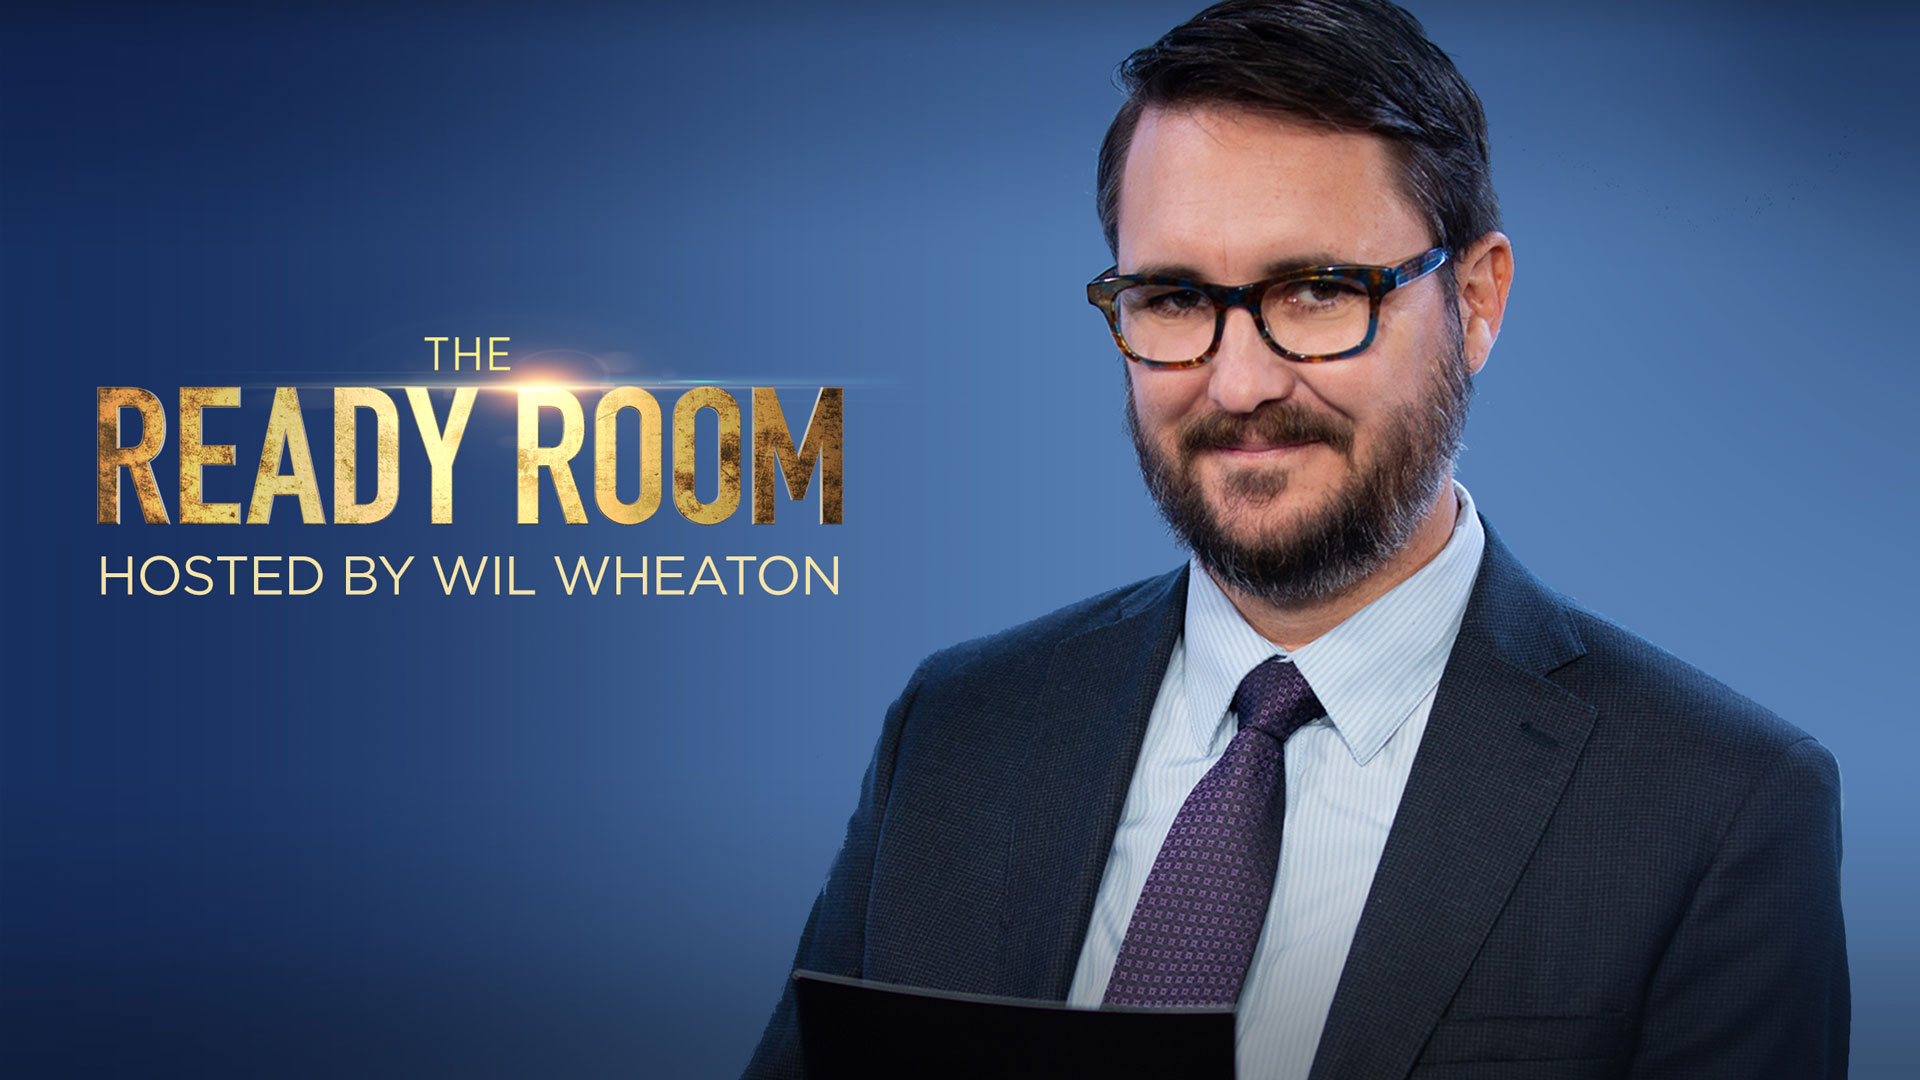 star-trek-picard-the-ready-room-hosted-by-wil-wheaton-promo.jpg